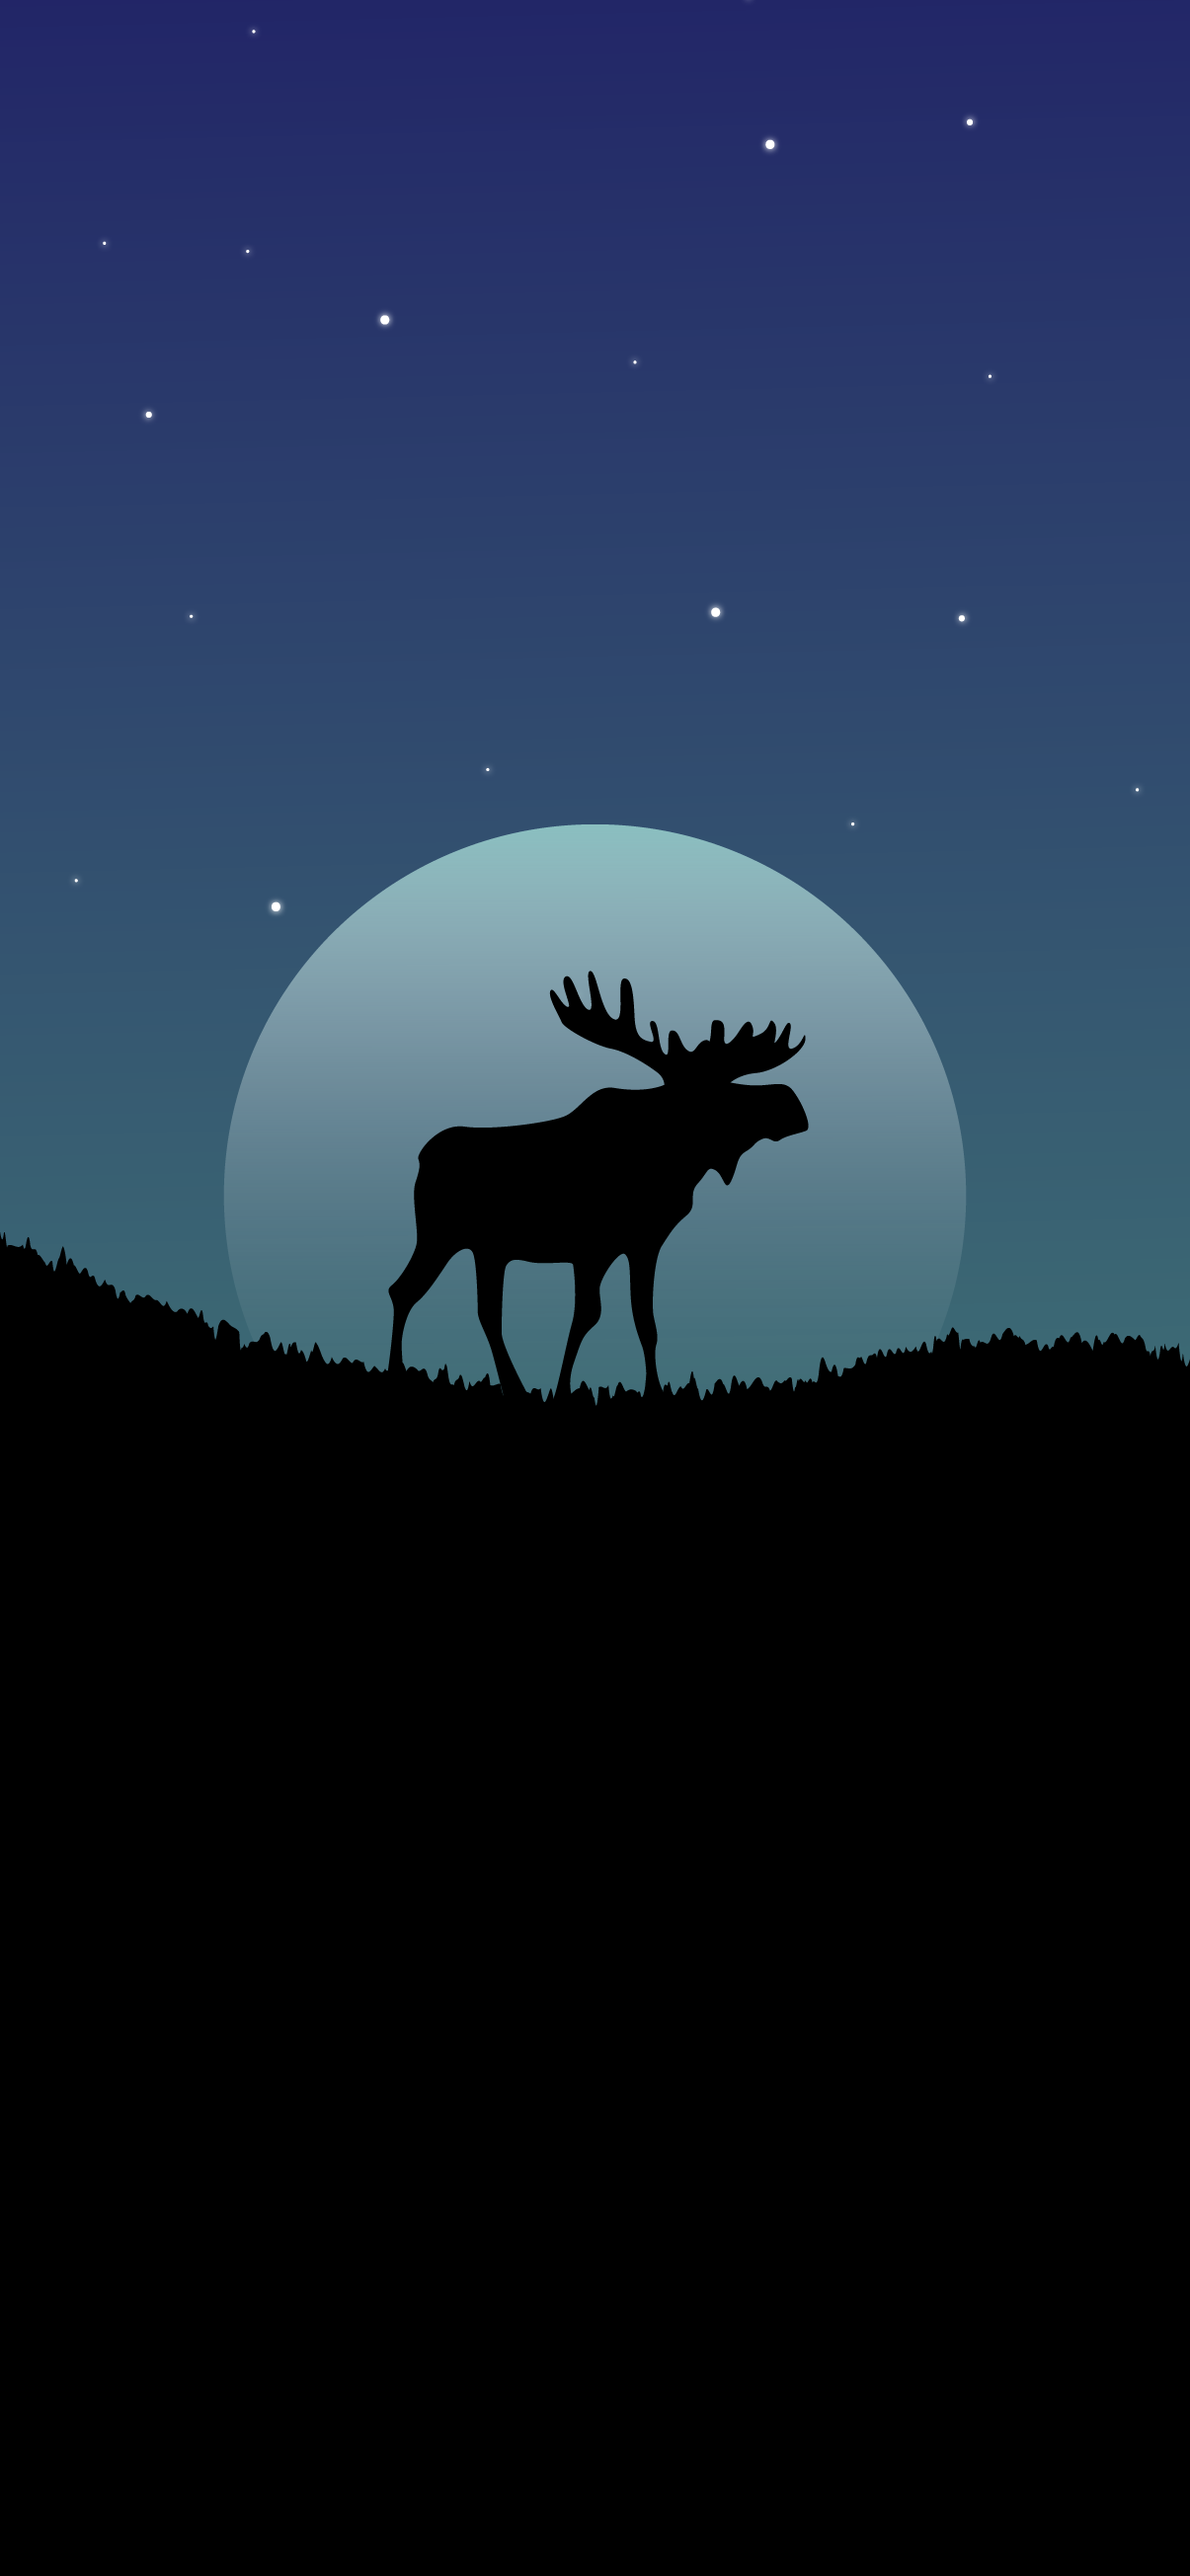 beautiful and cool wallpaper amoled for mobile phone moose animal night